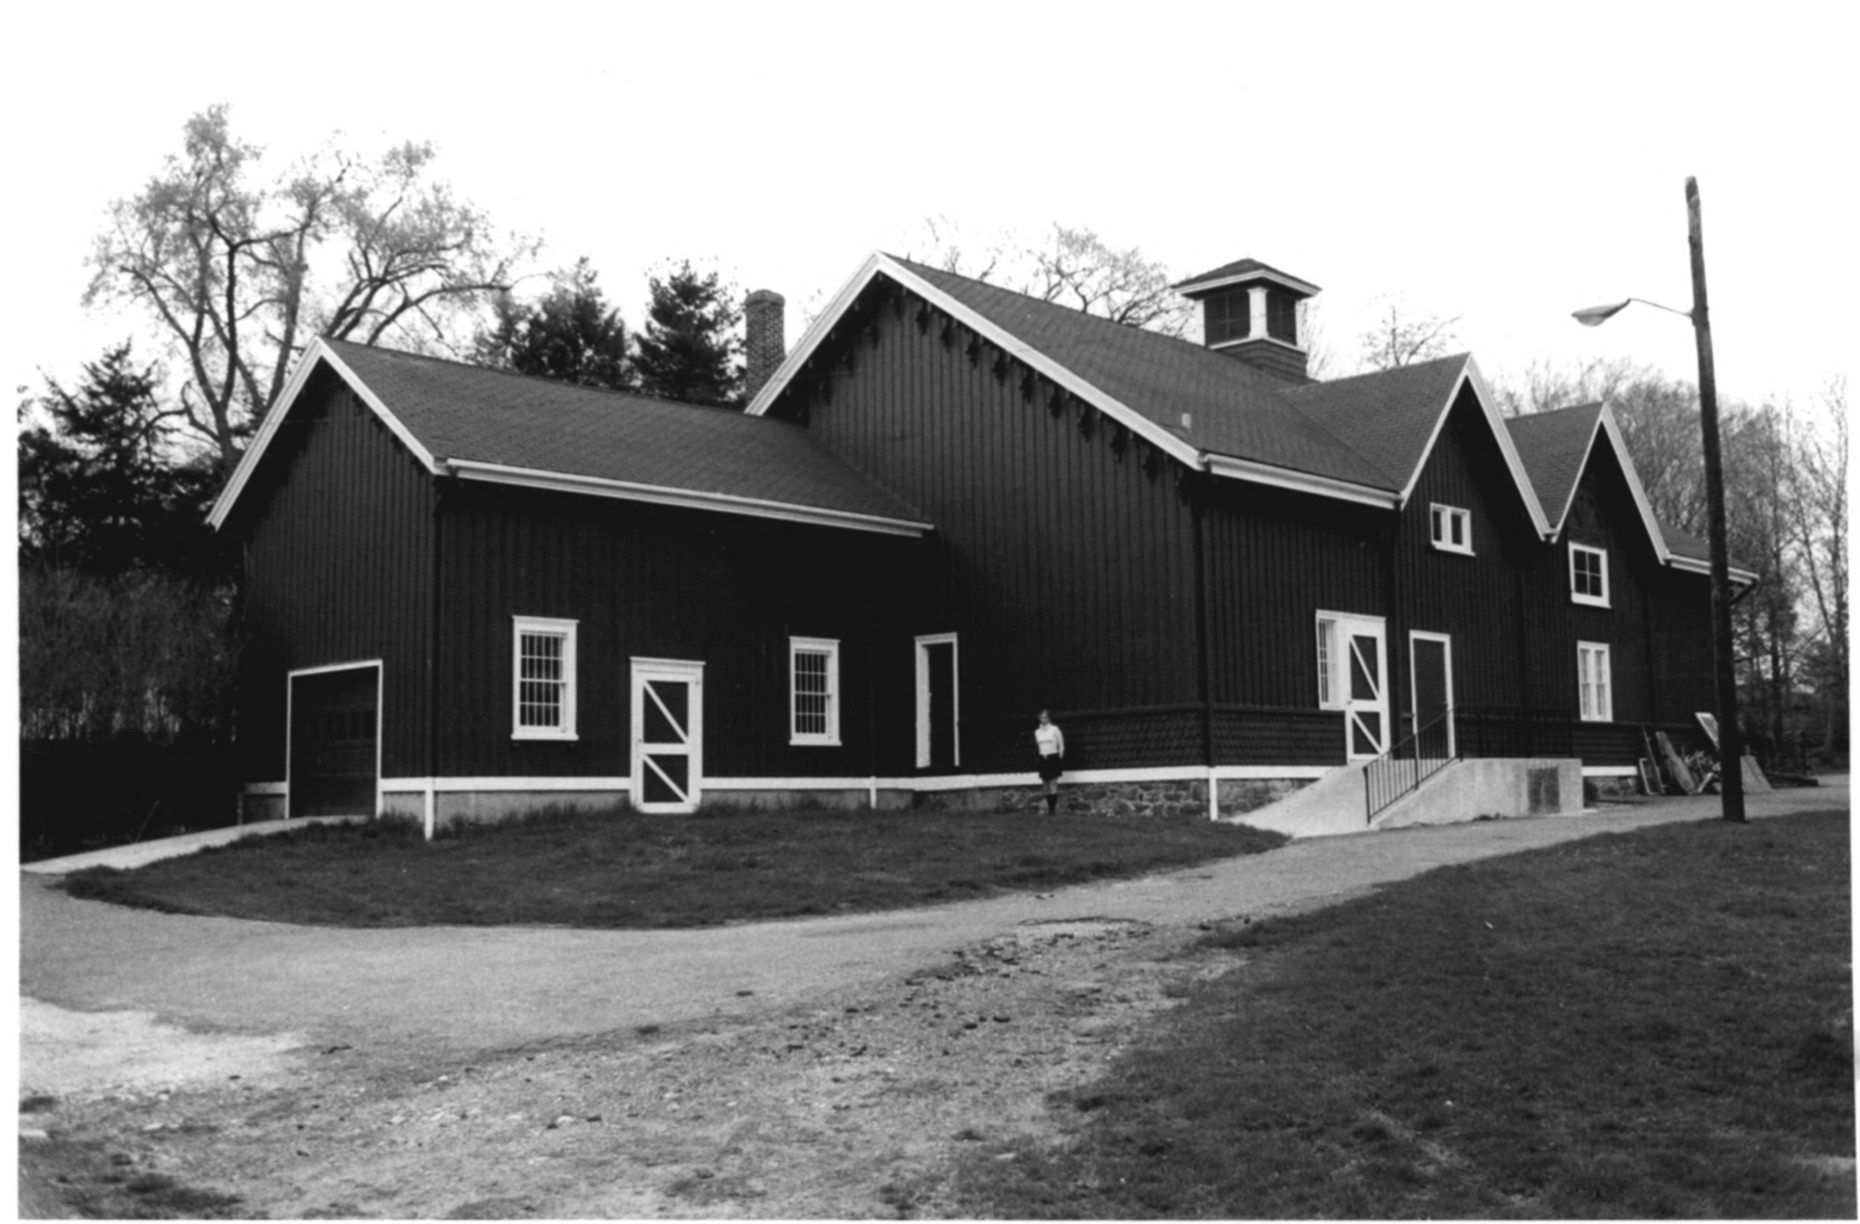 Southwest Side of the CJ Starr Barn in 1979 by Steven H. Hirschberg as Recorded on the National Park Service National Register of Historic Places